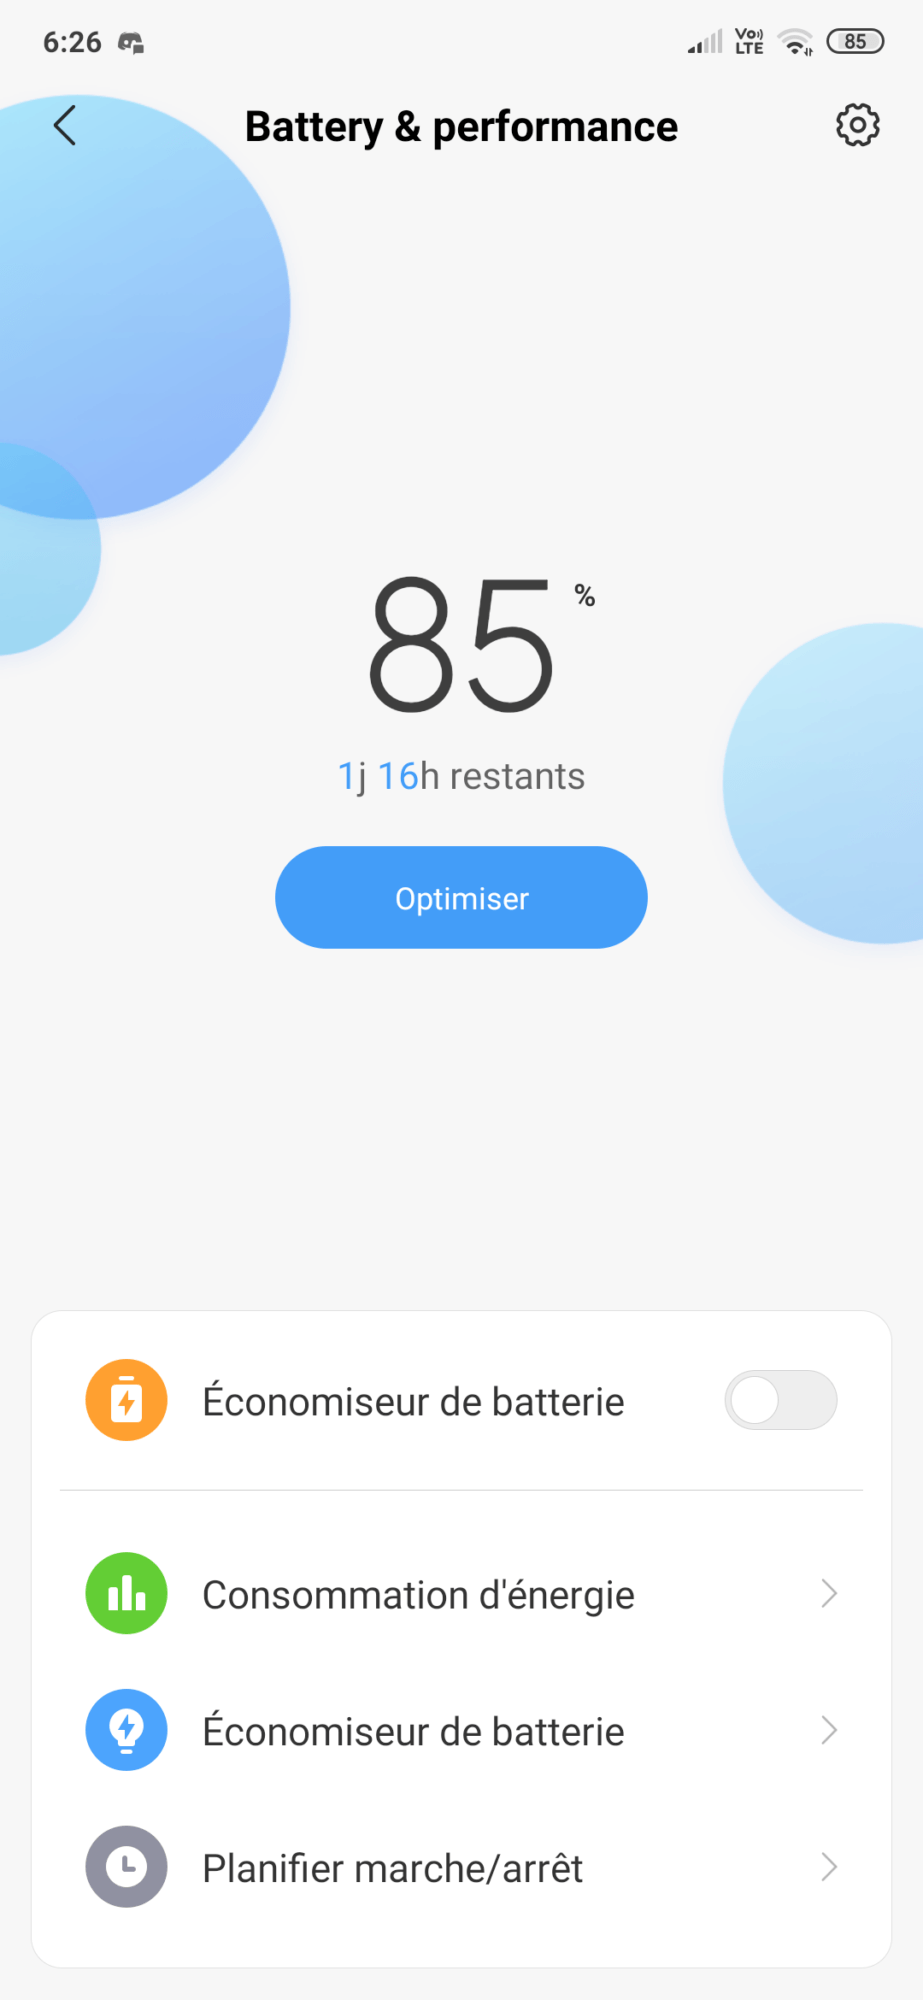 MI 9T Pro écran miui pop-up borderless boîte Snadpragon 855 48 MP batterie charge rapide journée